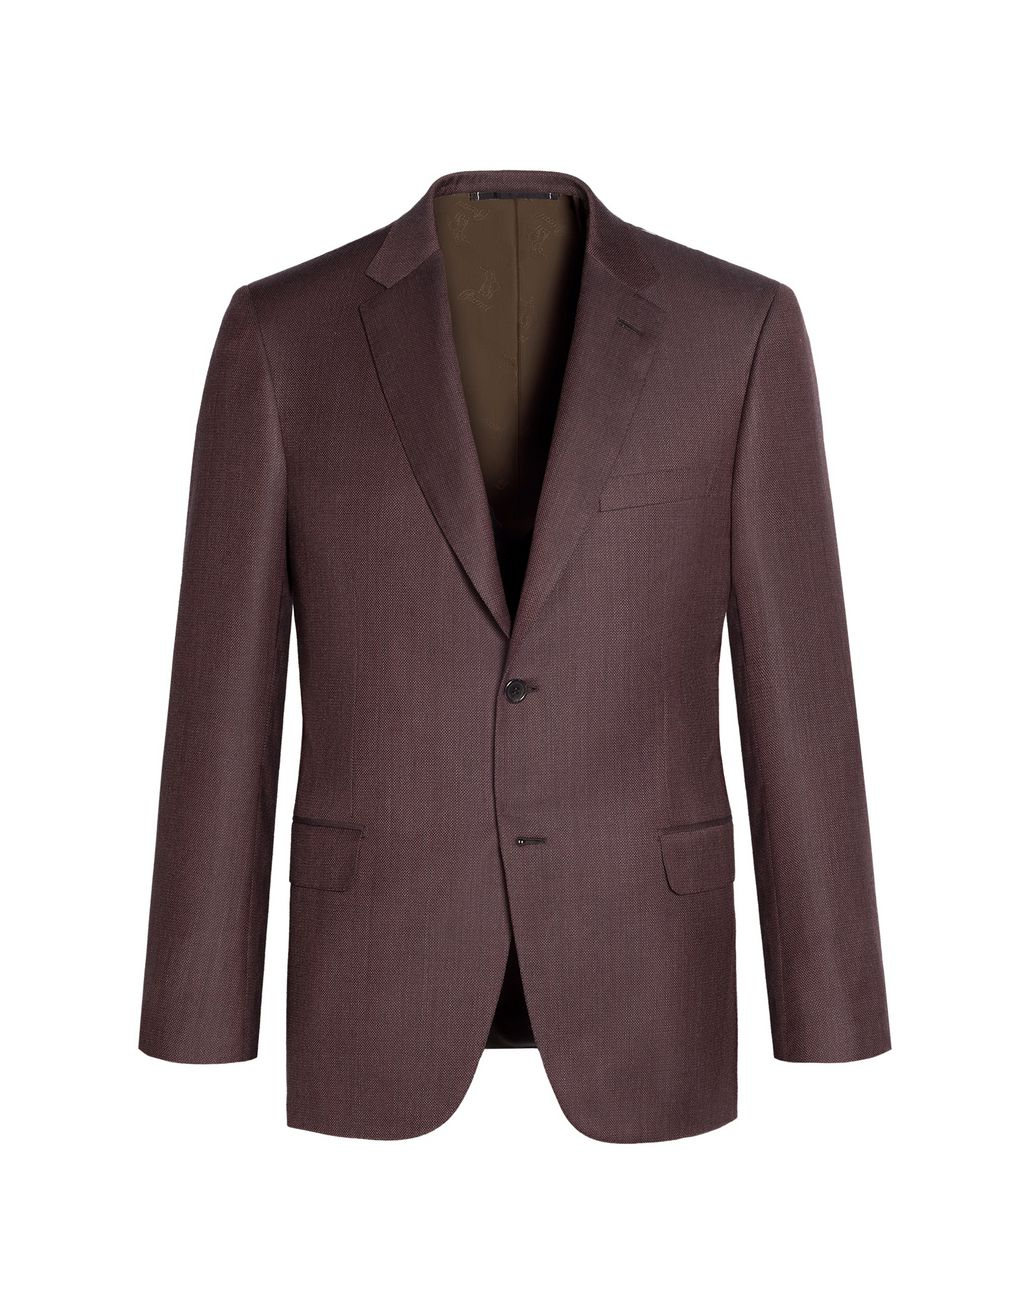 BRIONI Whiskey Ravello Jacket Jackets Man f